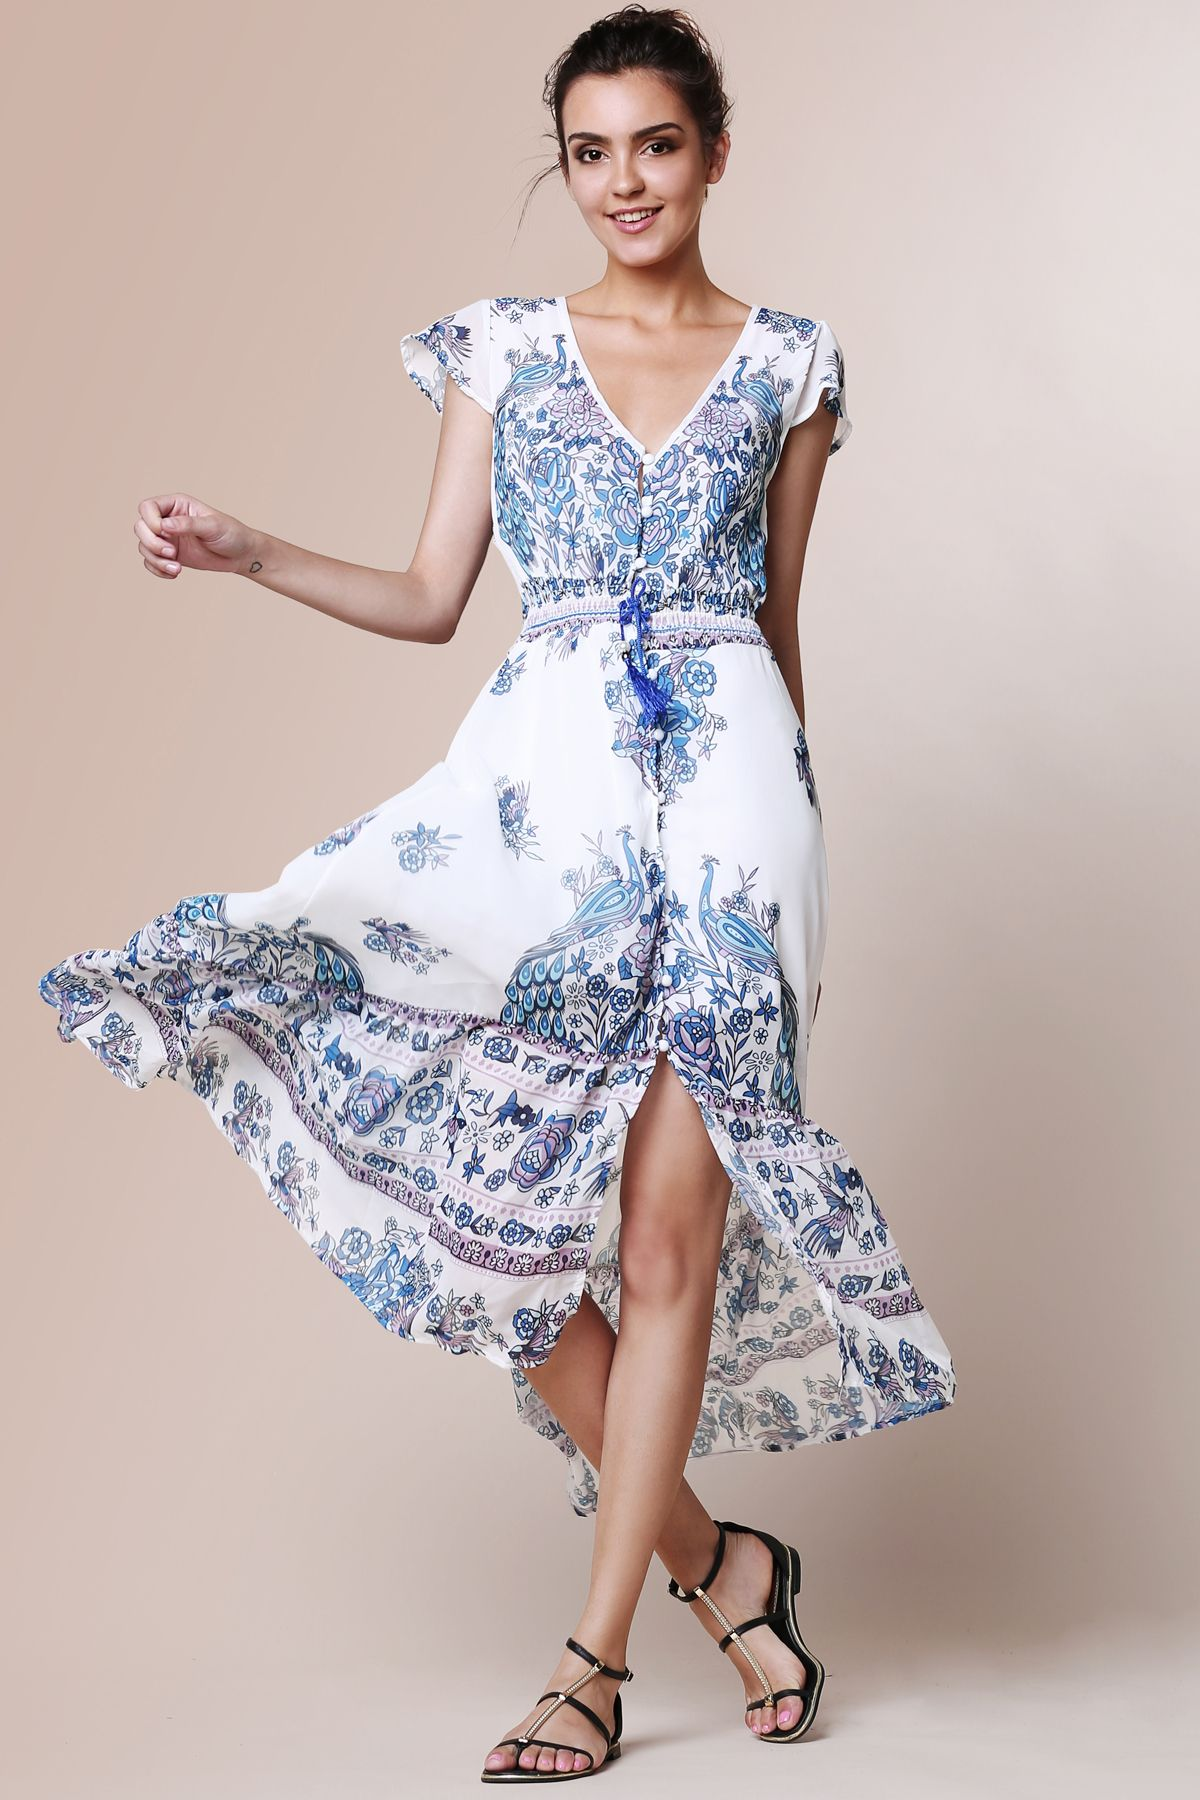 Pretty Summer Dresses